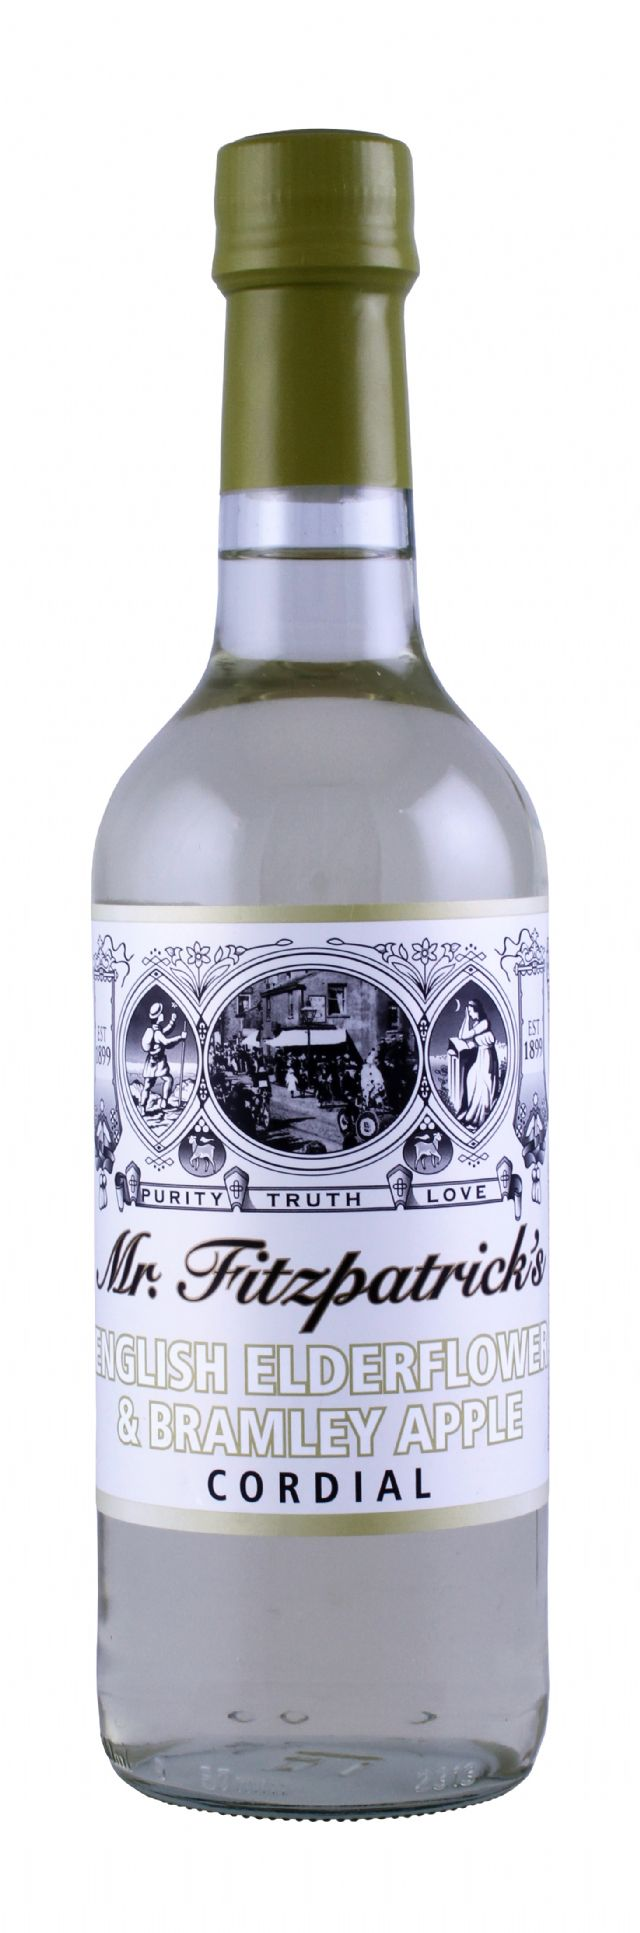 Mr Fitzpatrick's: MrFitz Elderflower Front